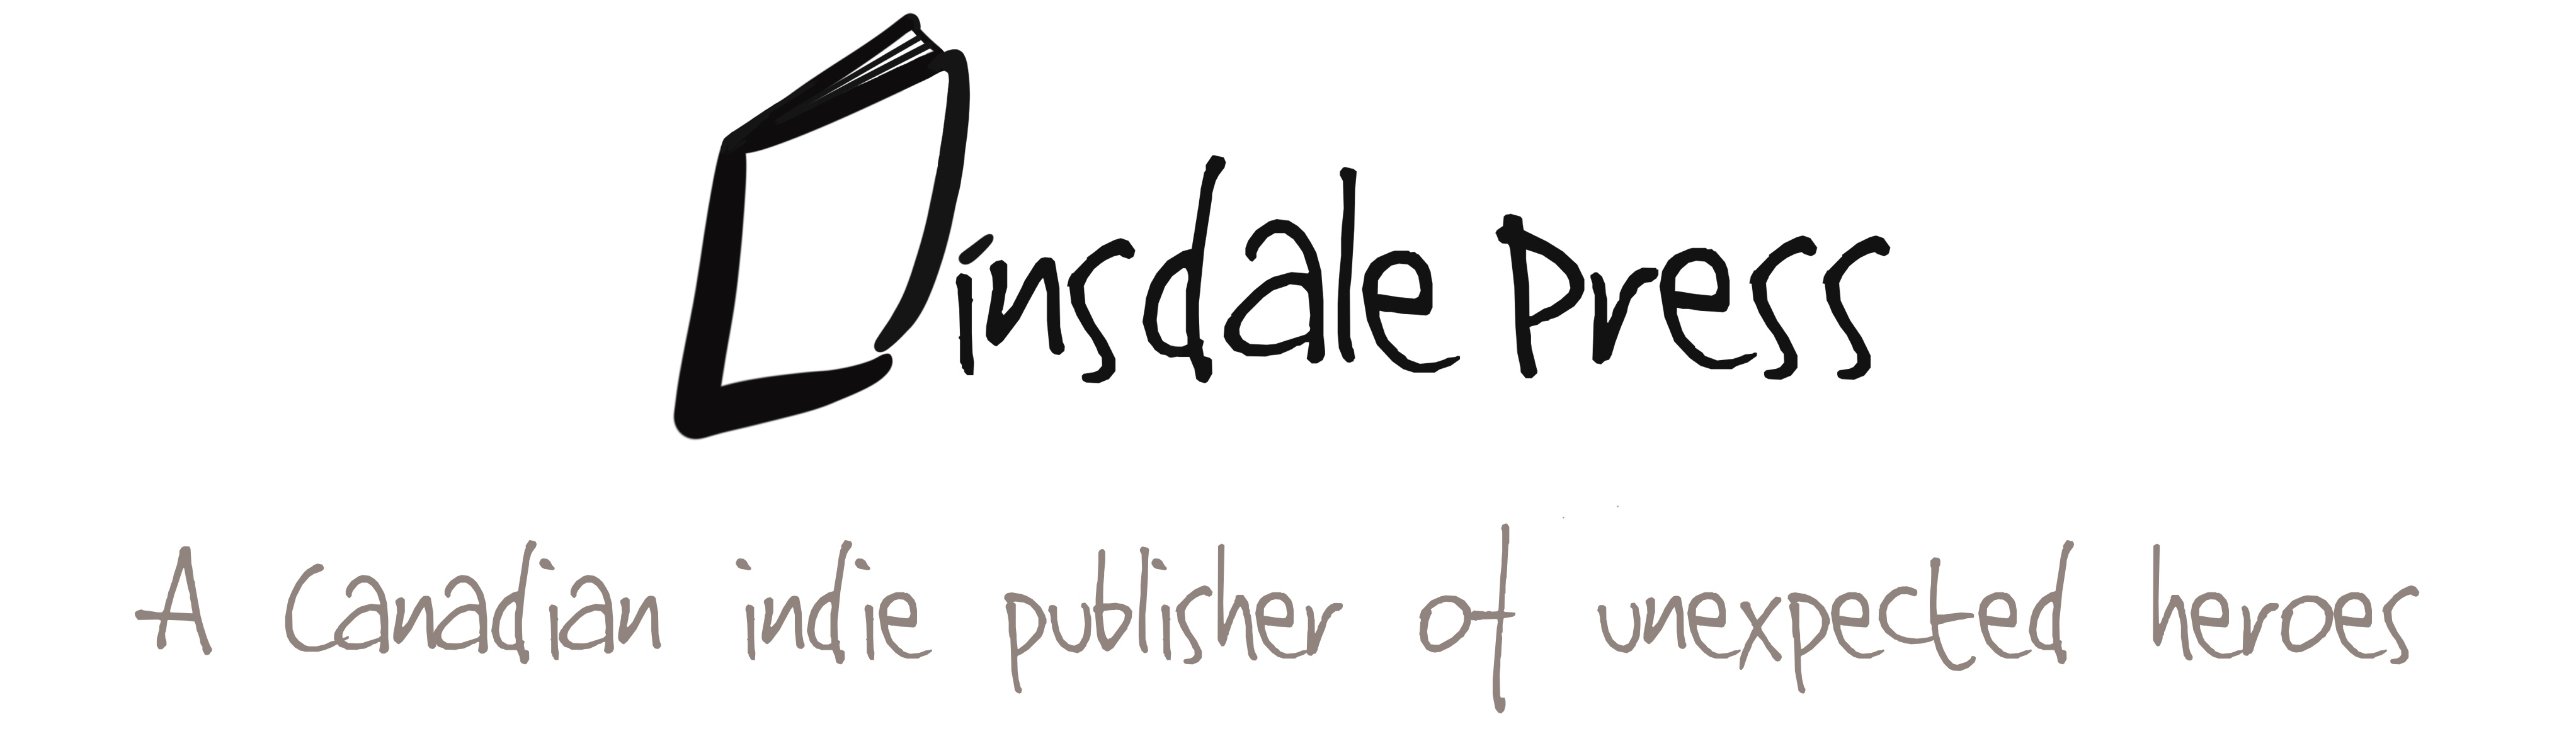 Dinsdale Press logo. The D resembles a book, and the rest is a handwritten-style text. Other text: A Canadian publisher of unexpected heroes.